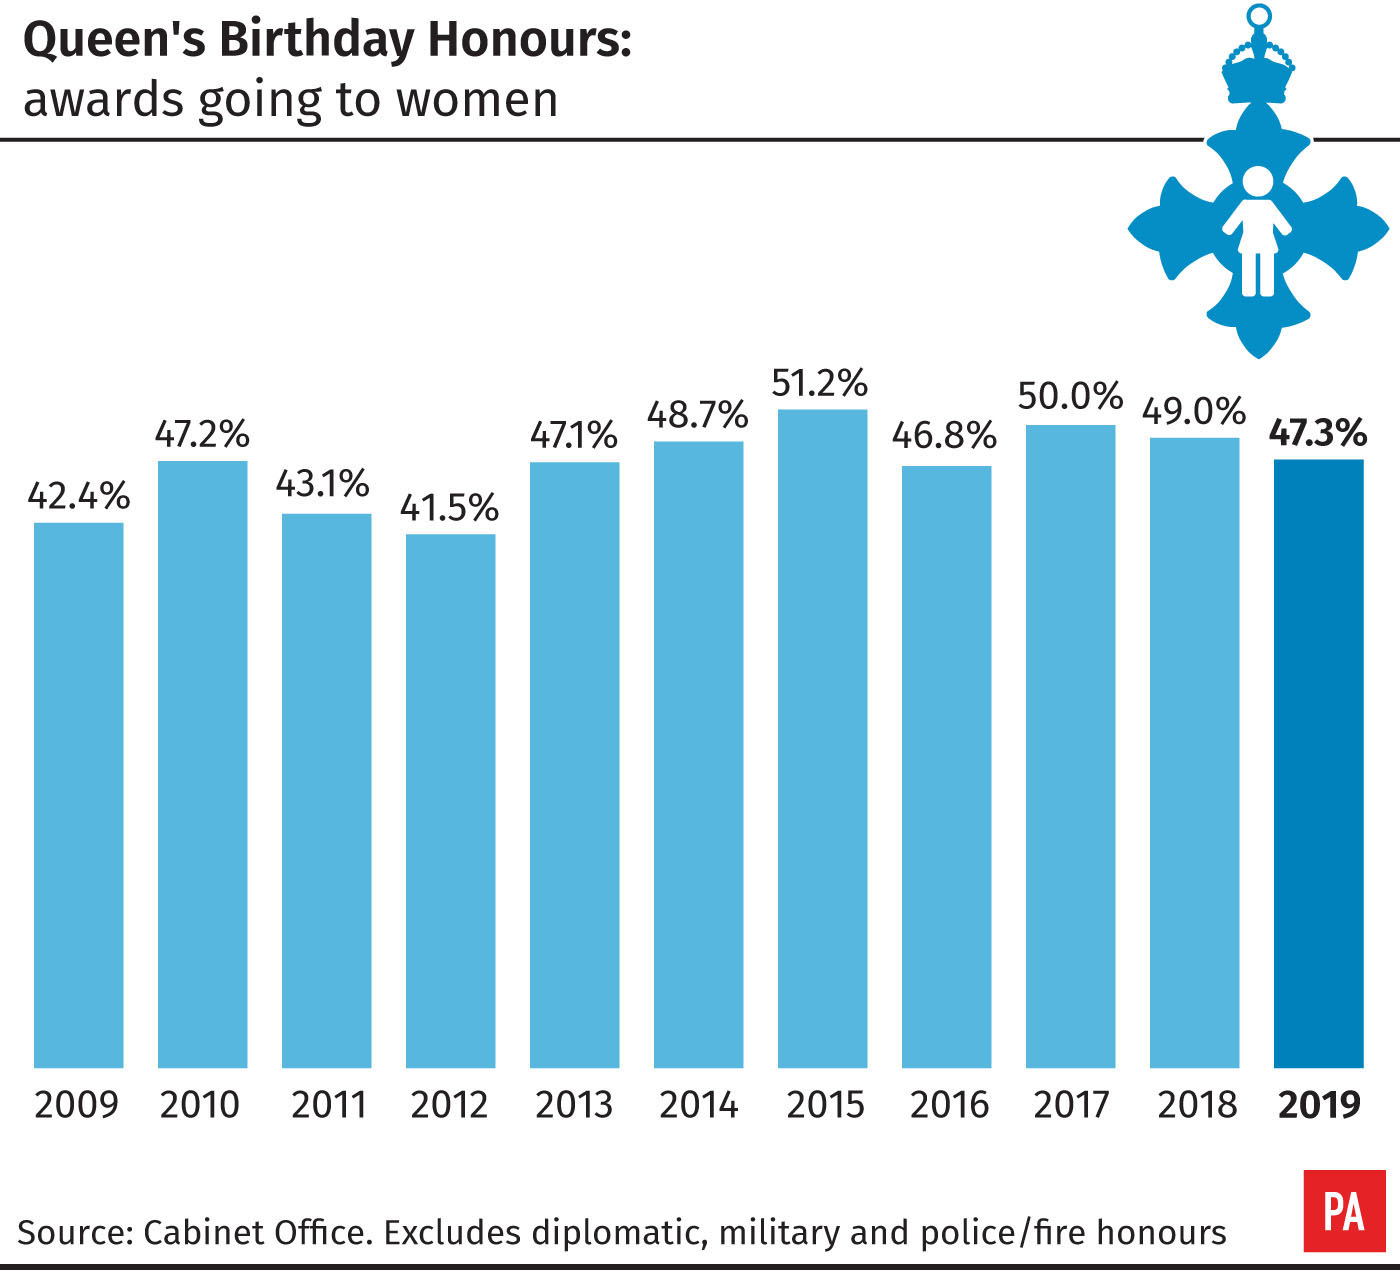 Queen's Birthday Honours, awards going to women